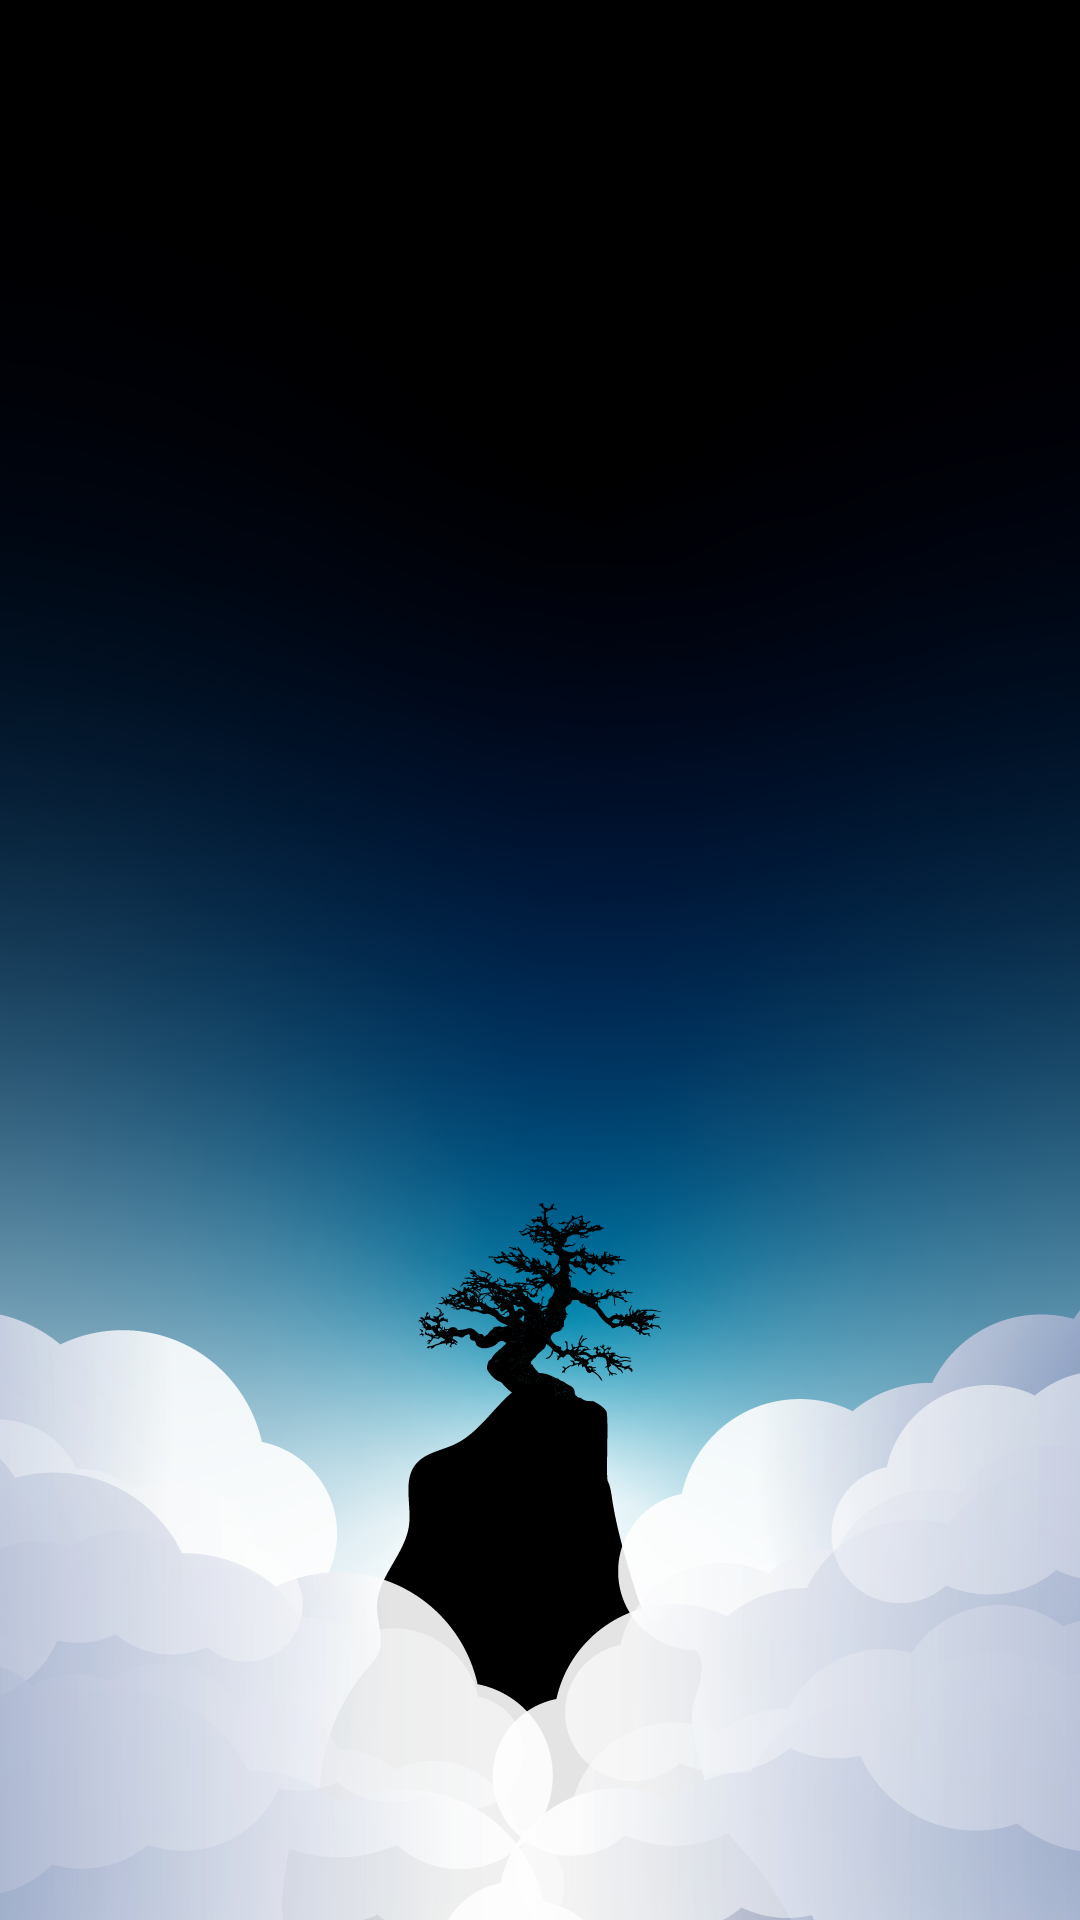 Iphone Wallpaper Hd 4k Tree In The Clouds Heroscreen Cool Wallpapers